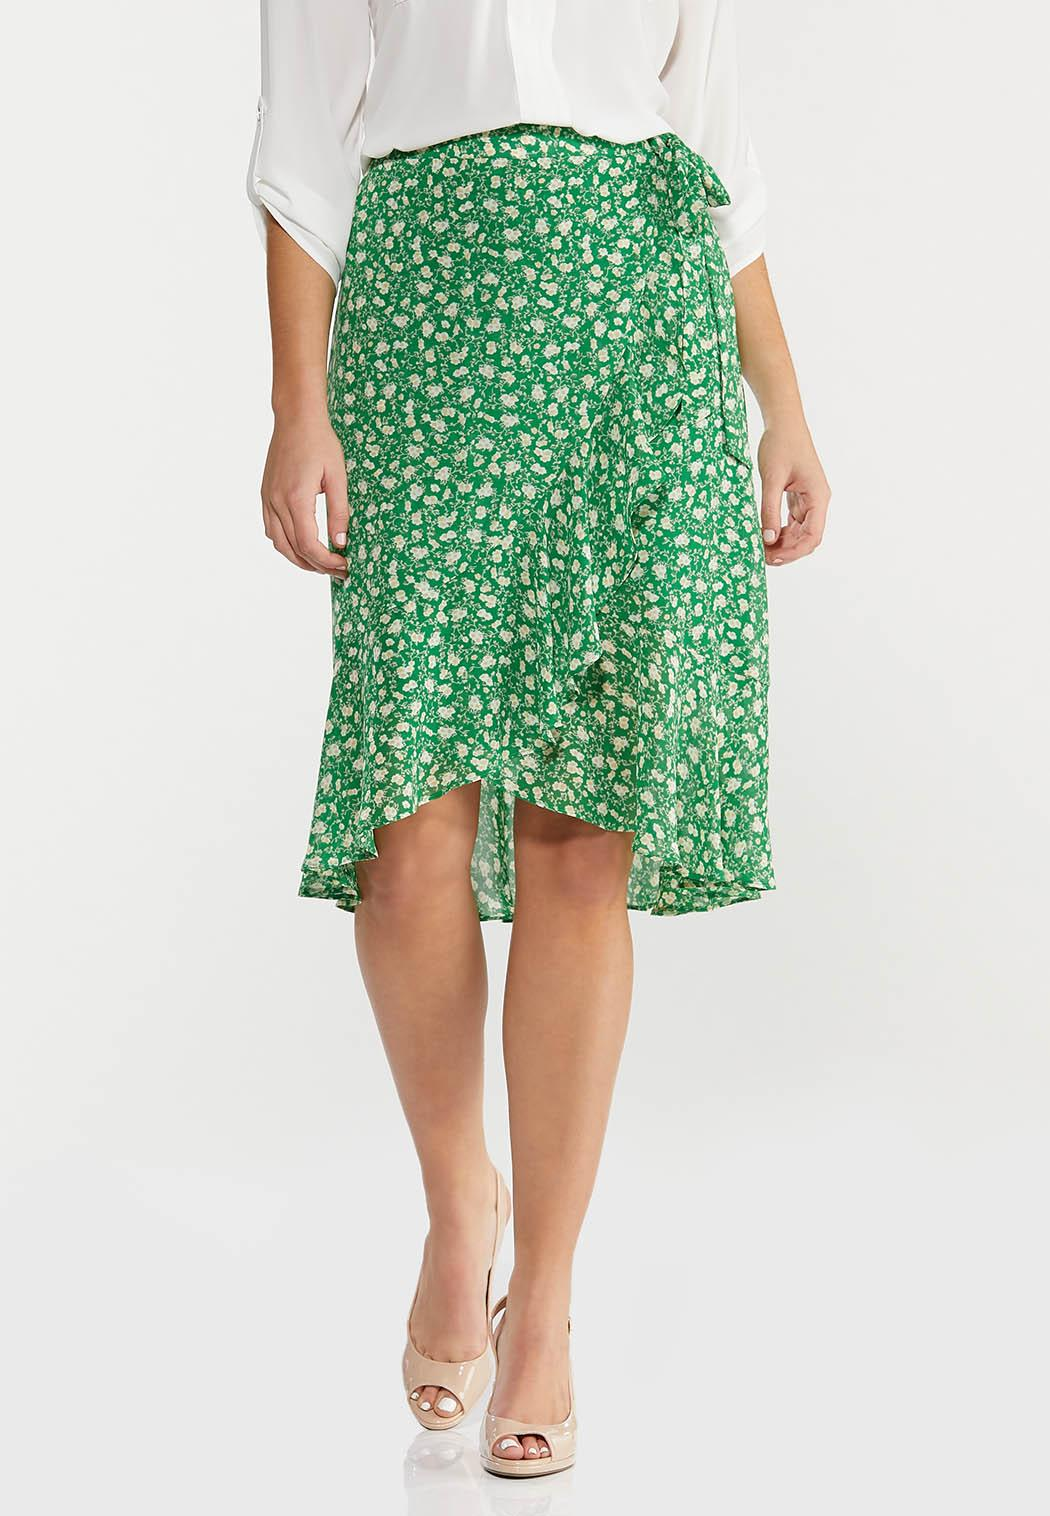 Plus Size Green Floral Faux Wrap Skirt